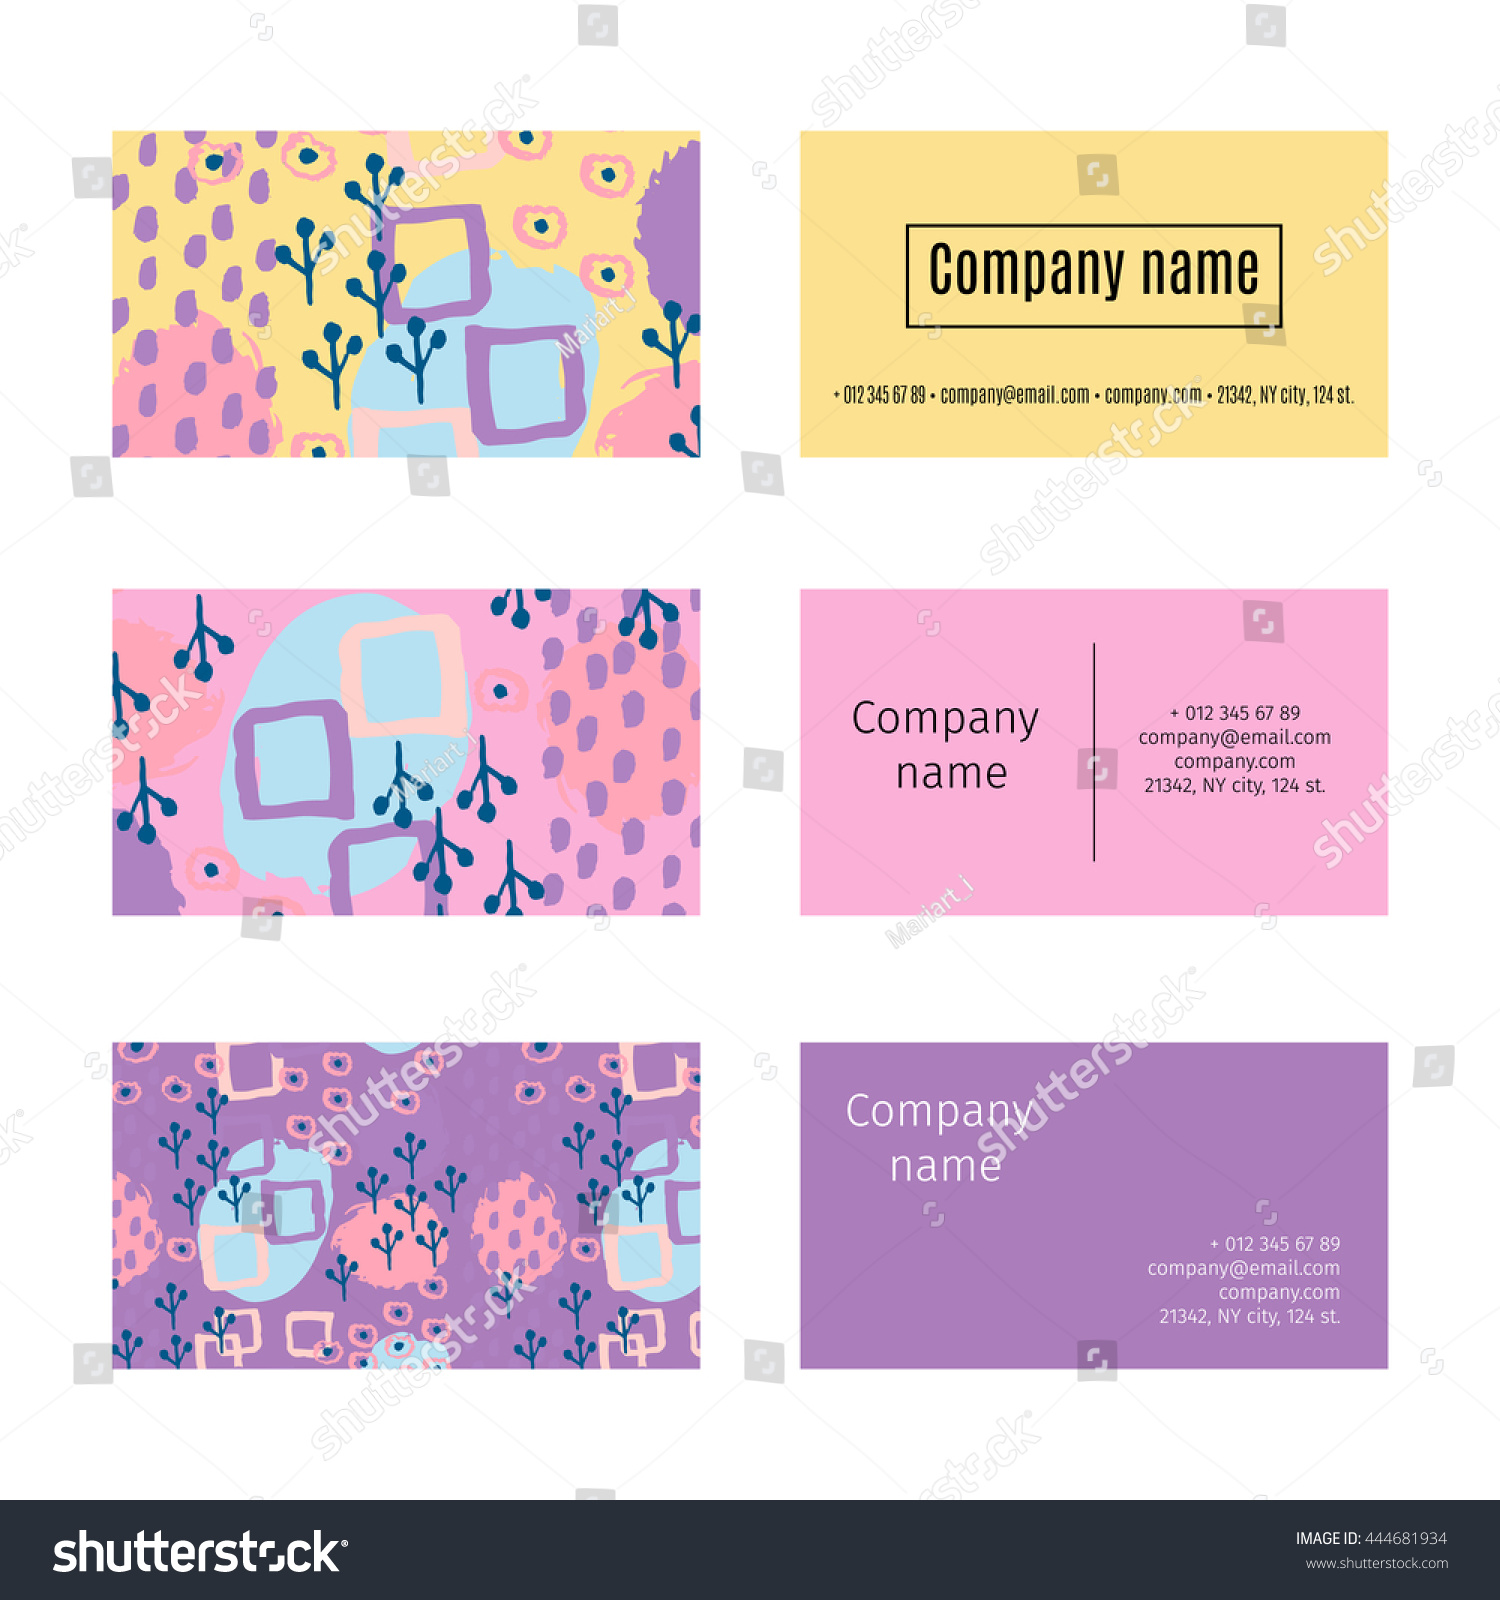 Collection Business Cards Memphis Abstract Seamless Stock Photo ...